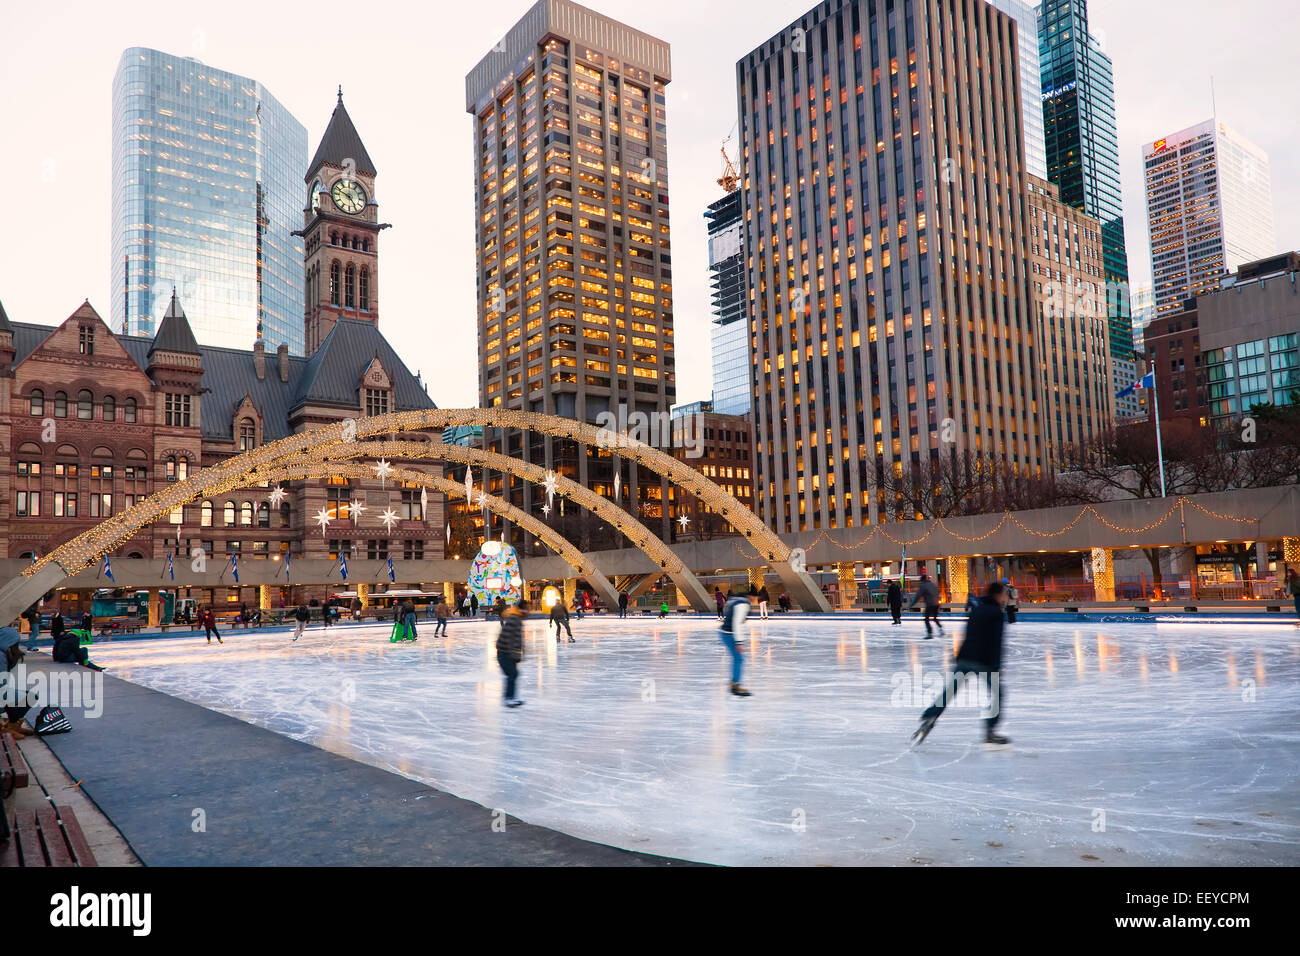 Christmas In Toronto Canada.Scatting Ring At Toronto City Hall At Christmas Time And